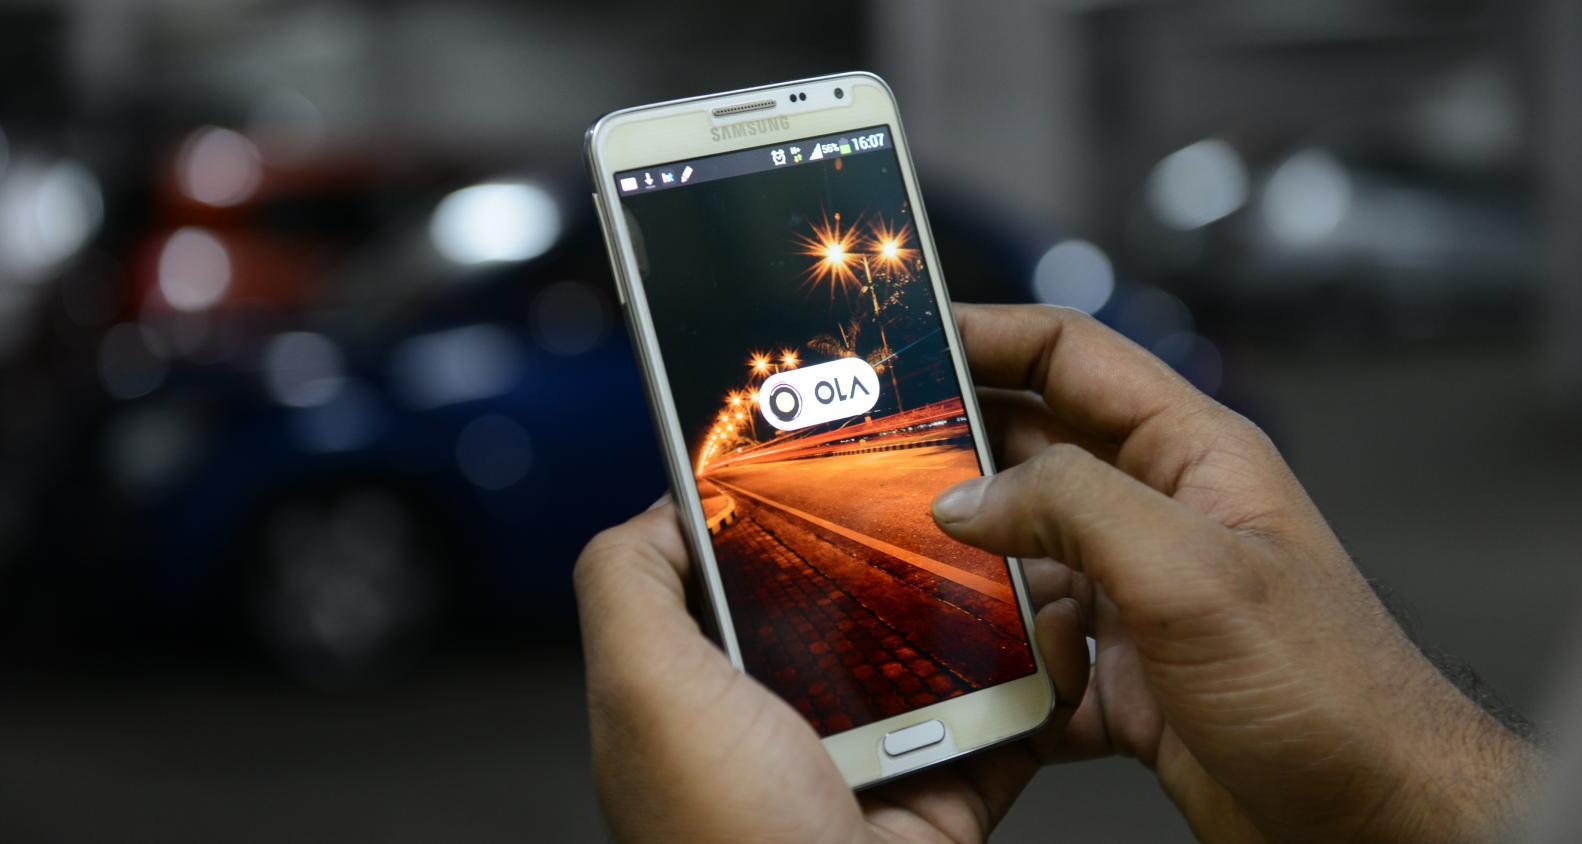 Ola is facing a drivers' legal challenge over data access rights and algorithmic management